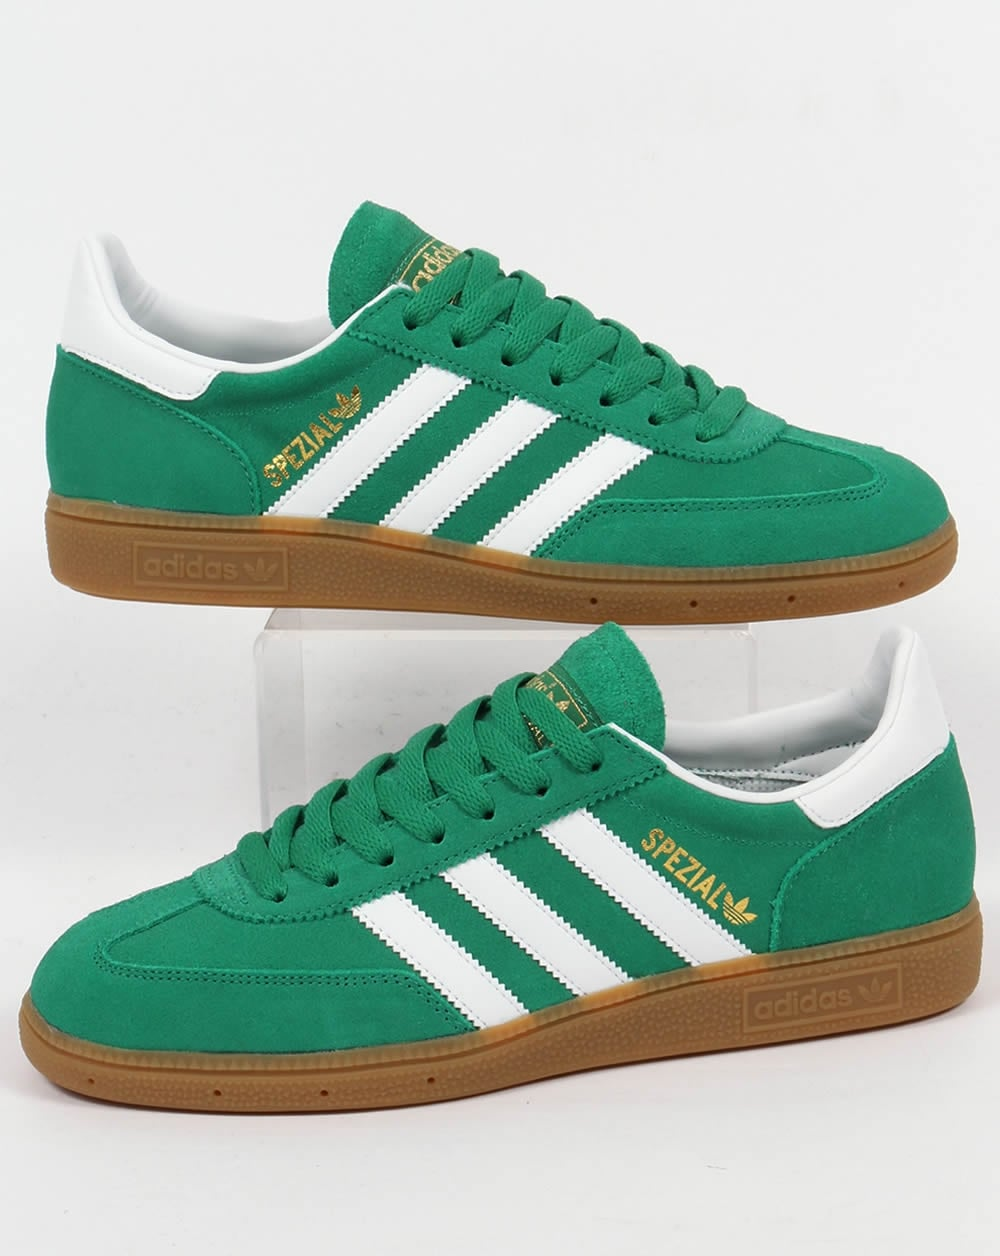 classic adidas trainers uk